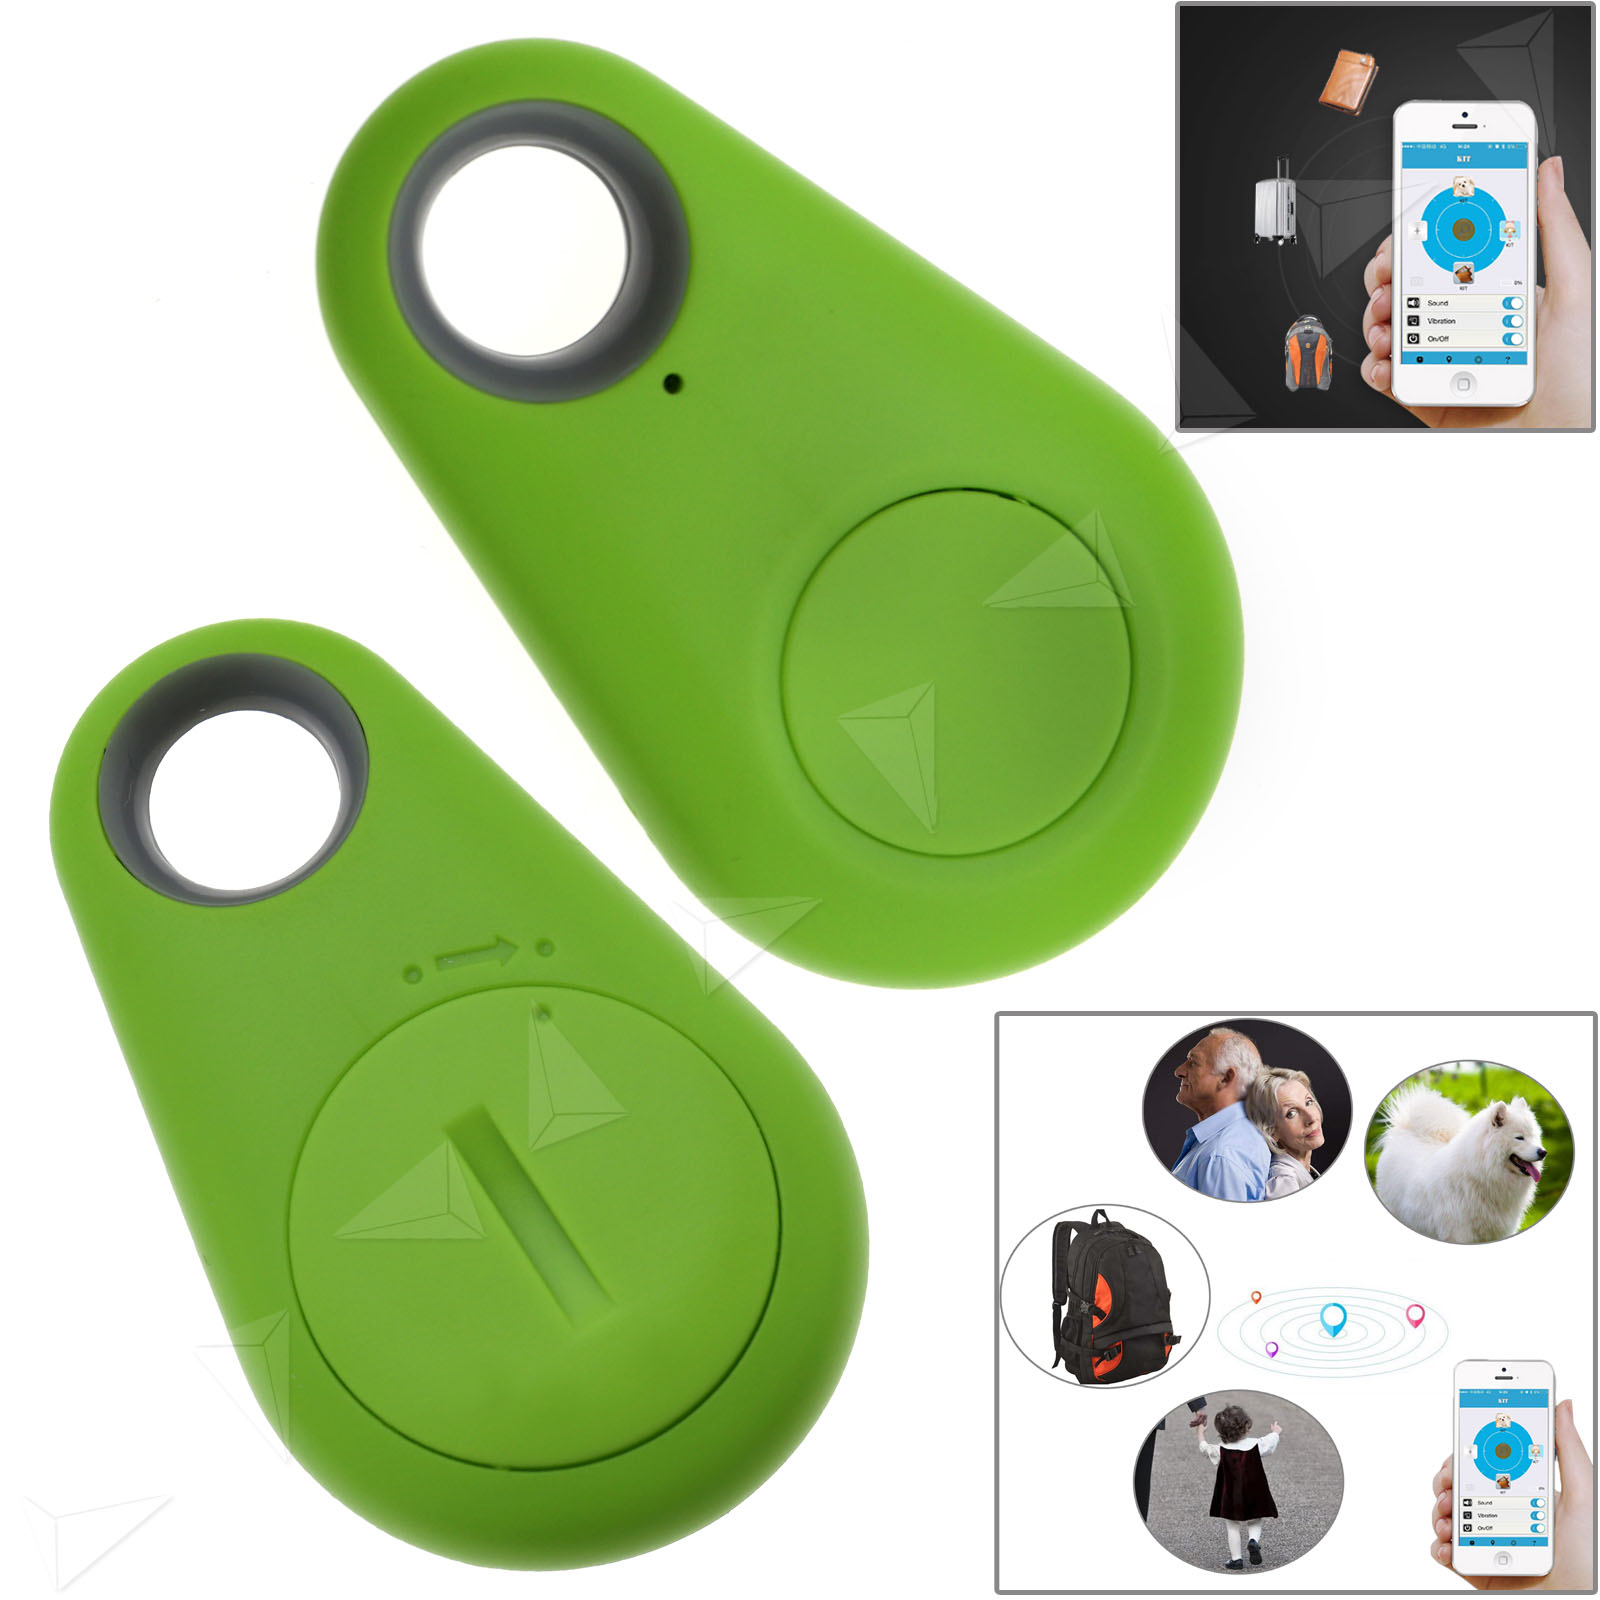 2pcs itag smart tag bluetooth tile tracker key finder anti lost and found